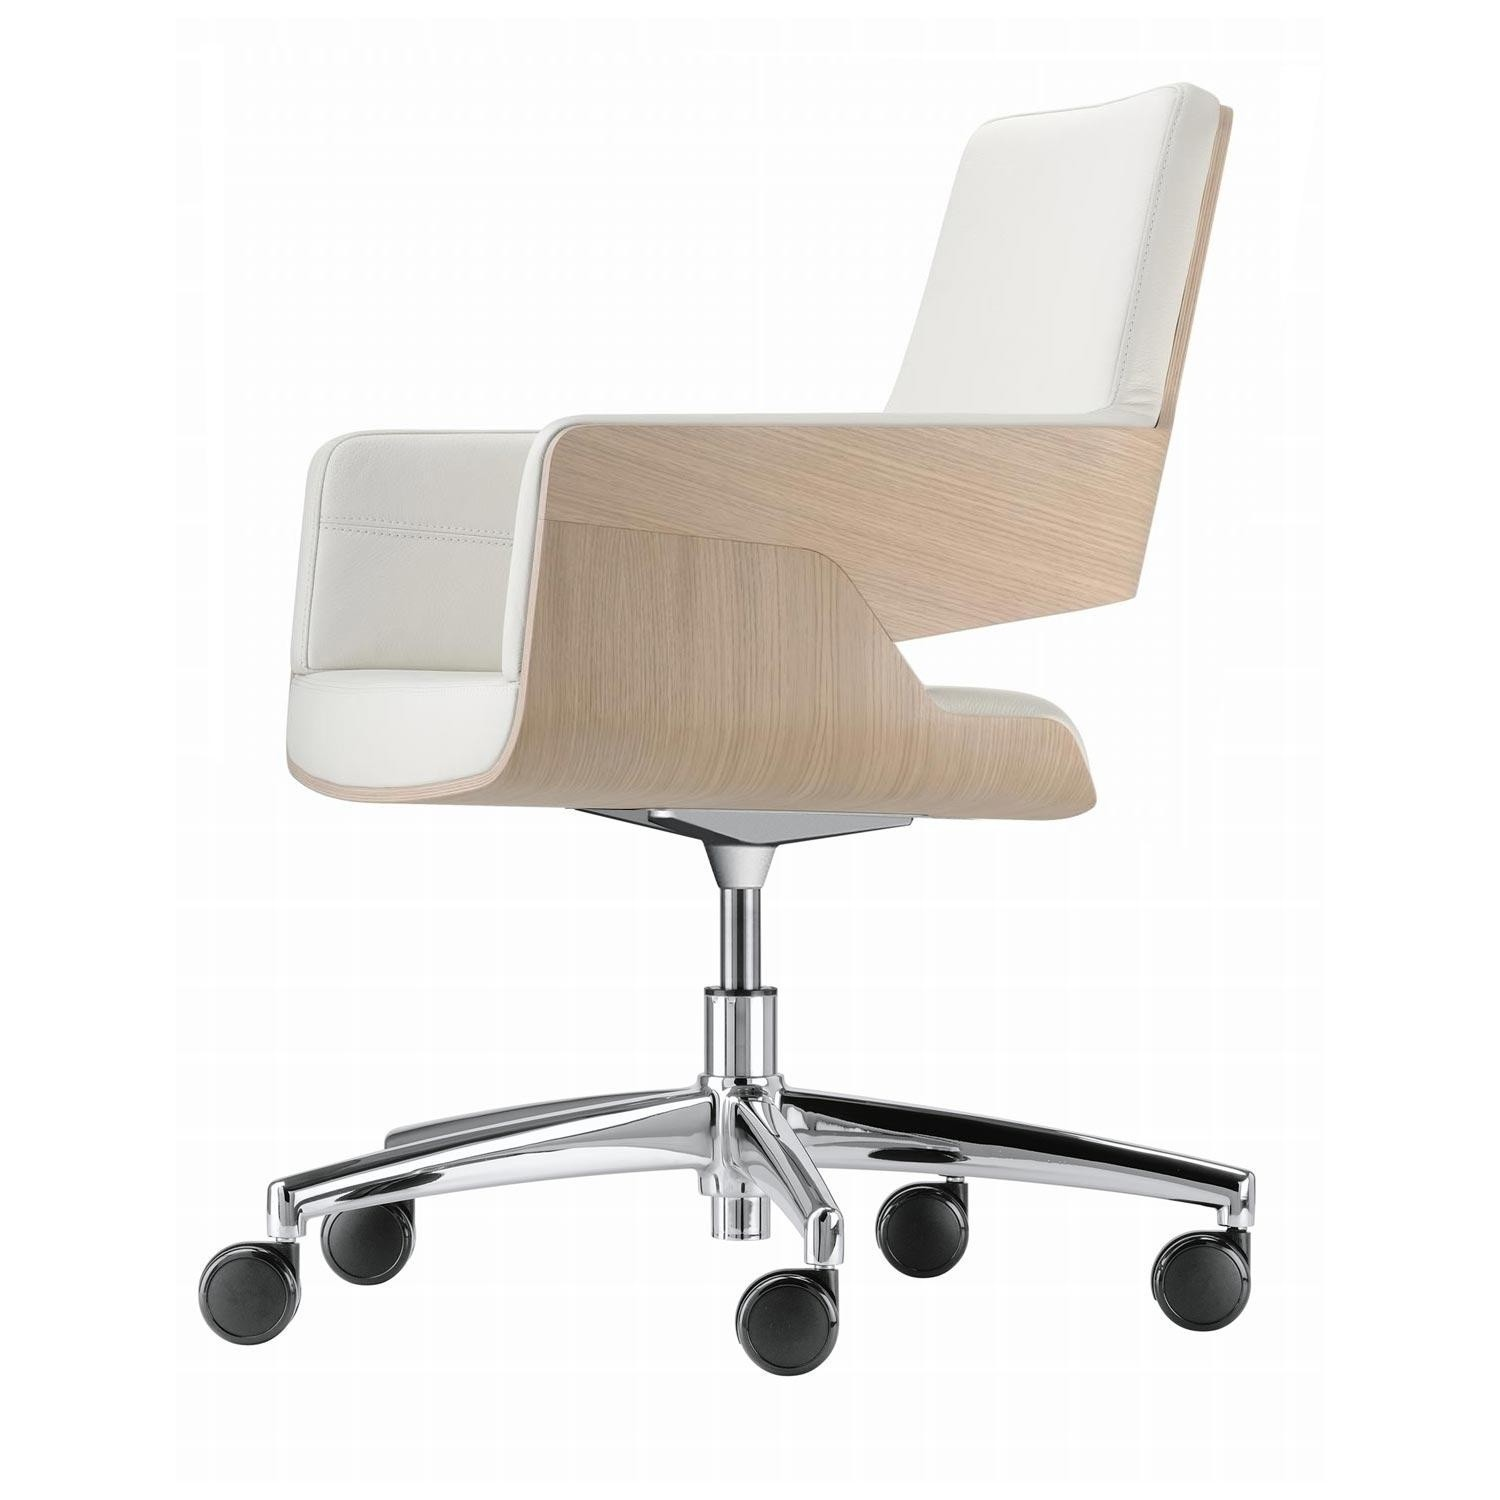 Bürostuhl Home Office Test Thonet S 845 Drw Office Chair With Wheels